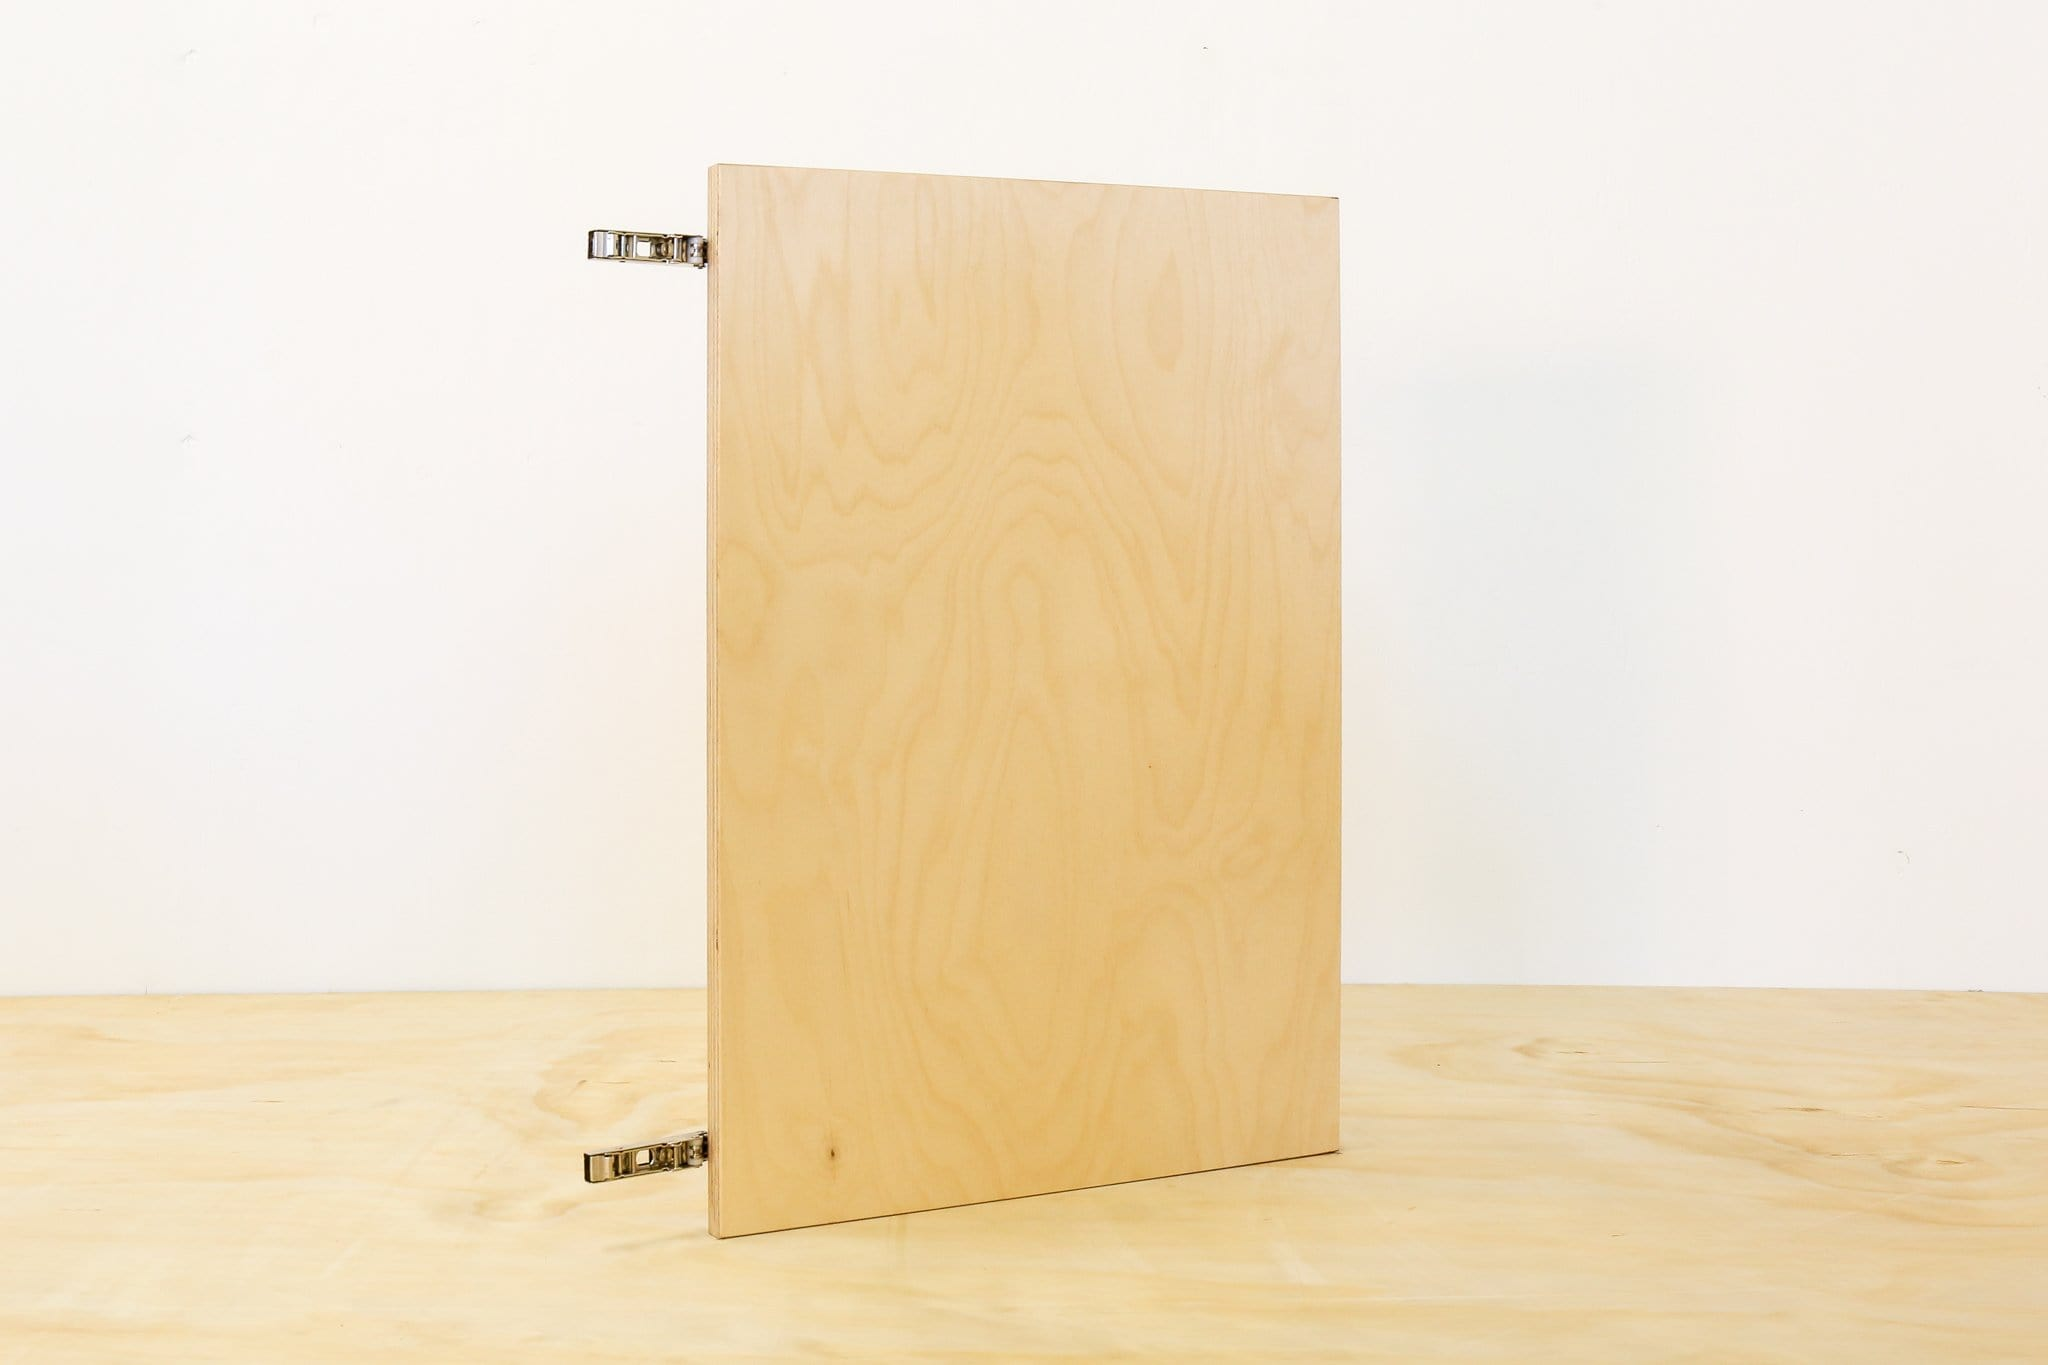 DOOR - Birch Plywood